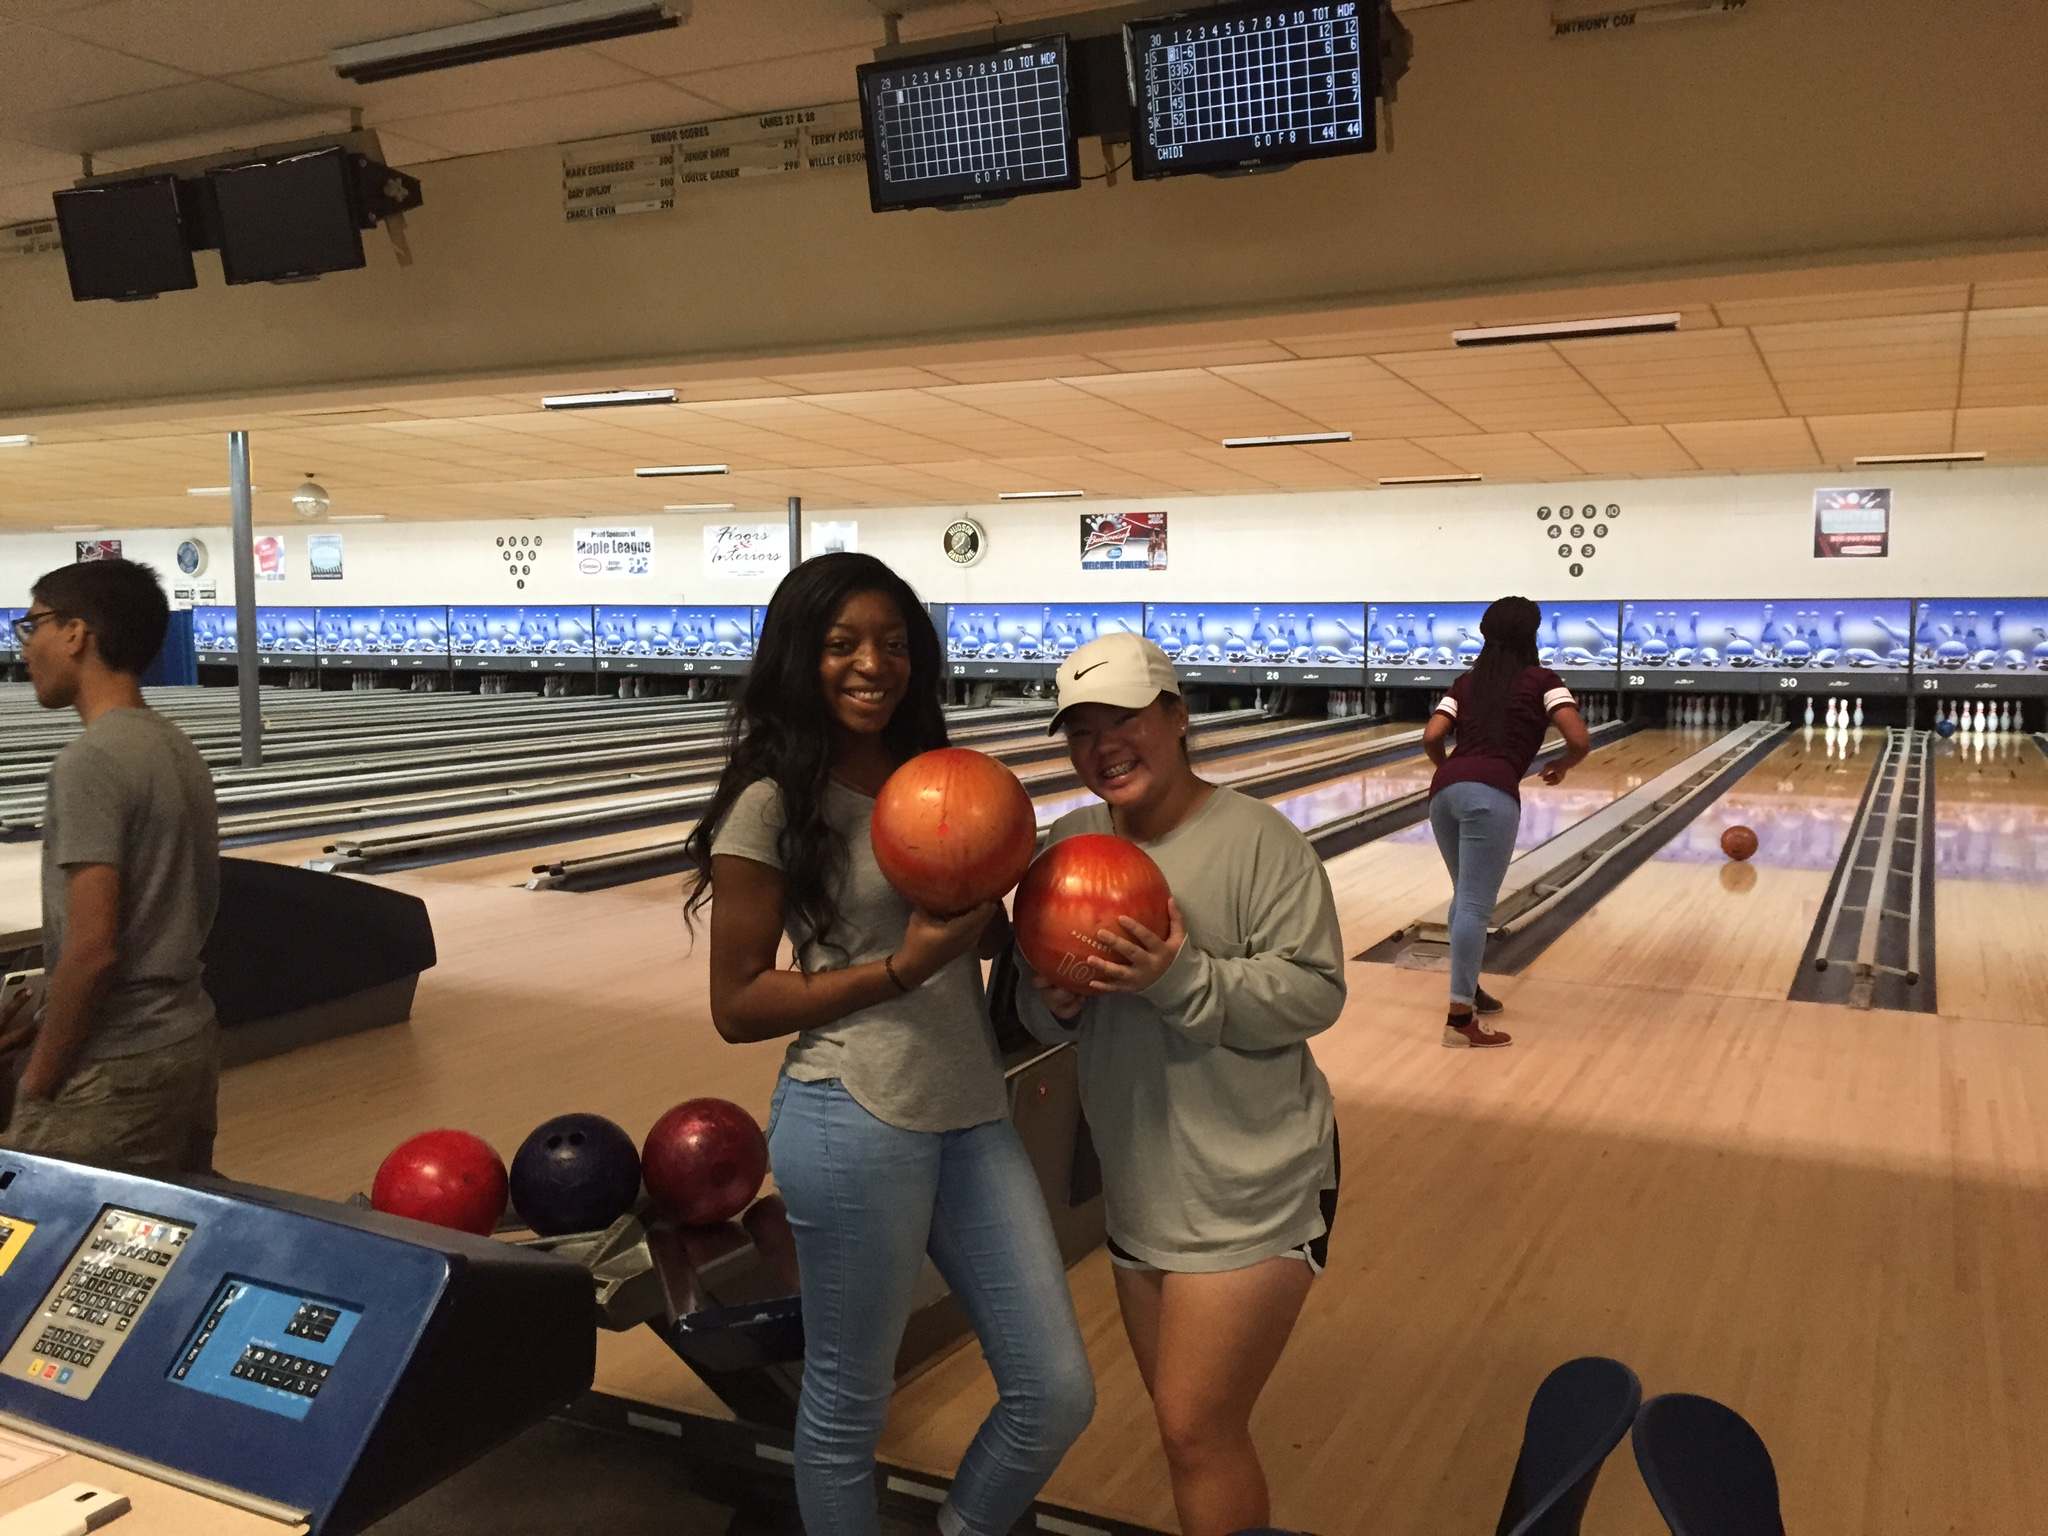 This past weekend some of our boarding students went to Green Acres Bowling Alley for a fun, local trip.